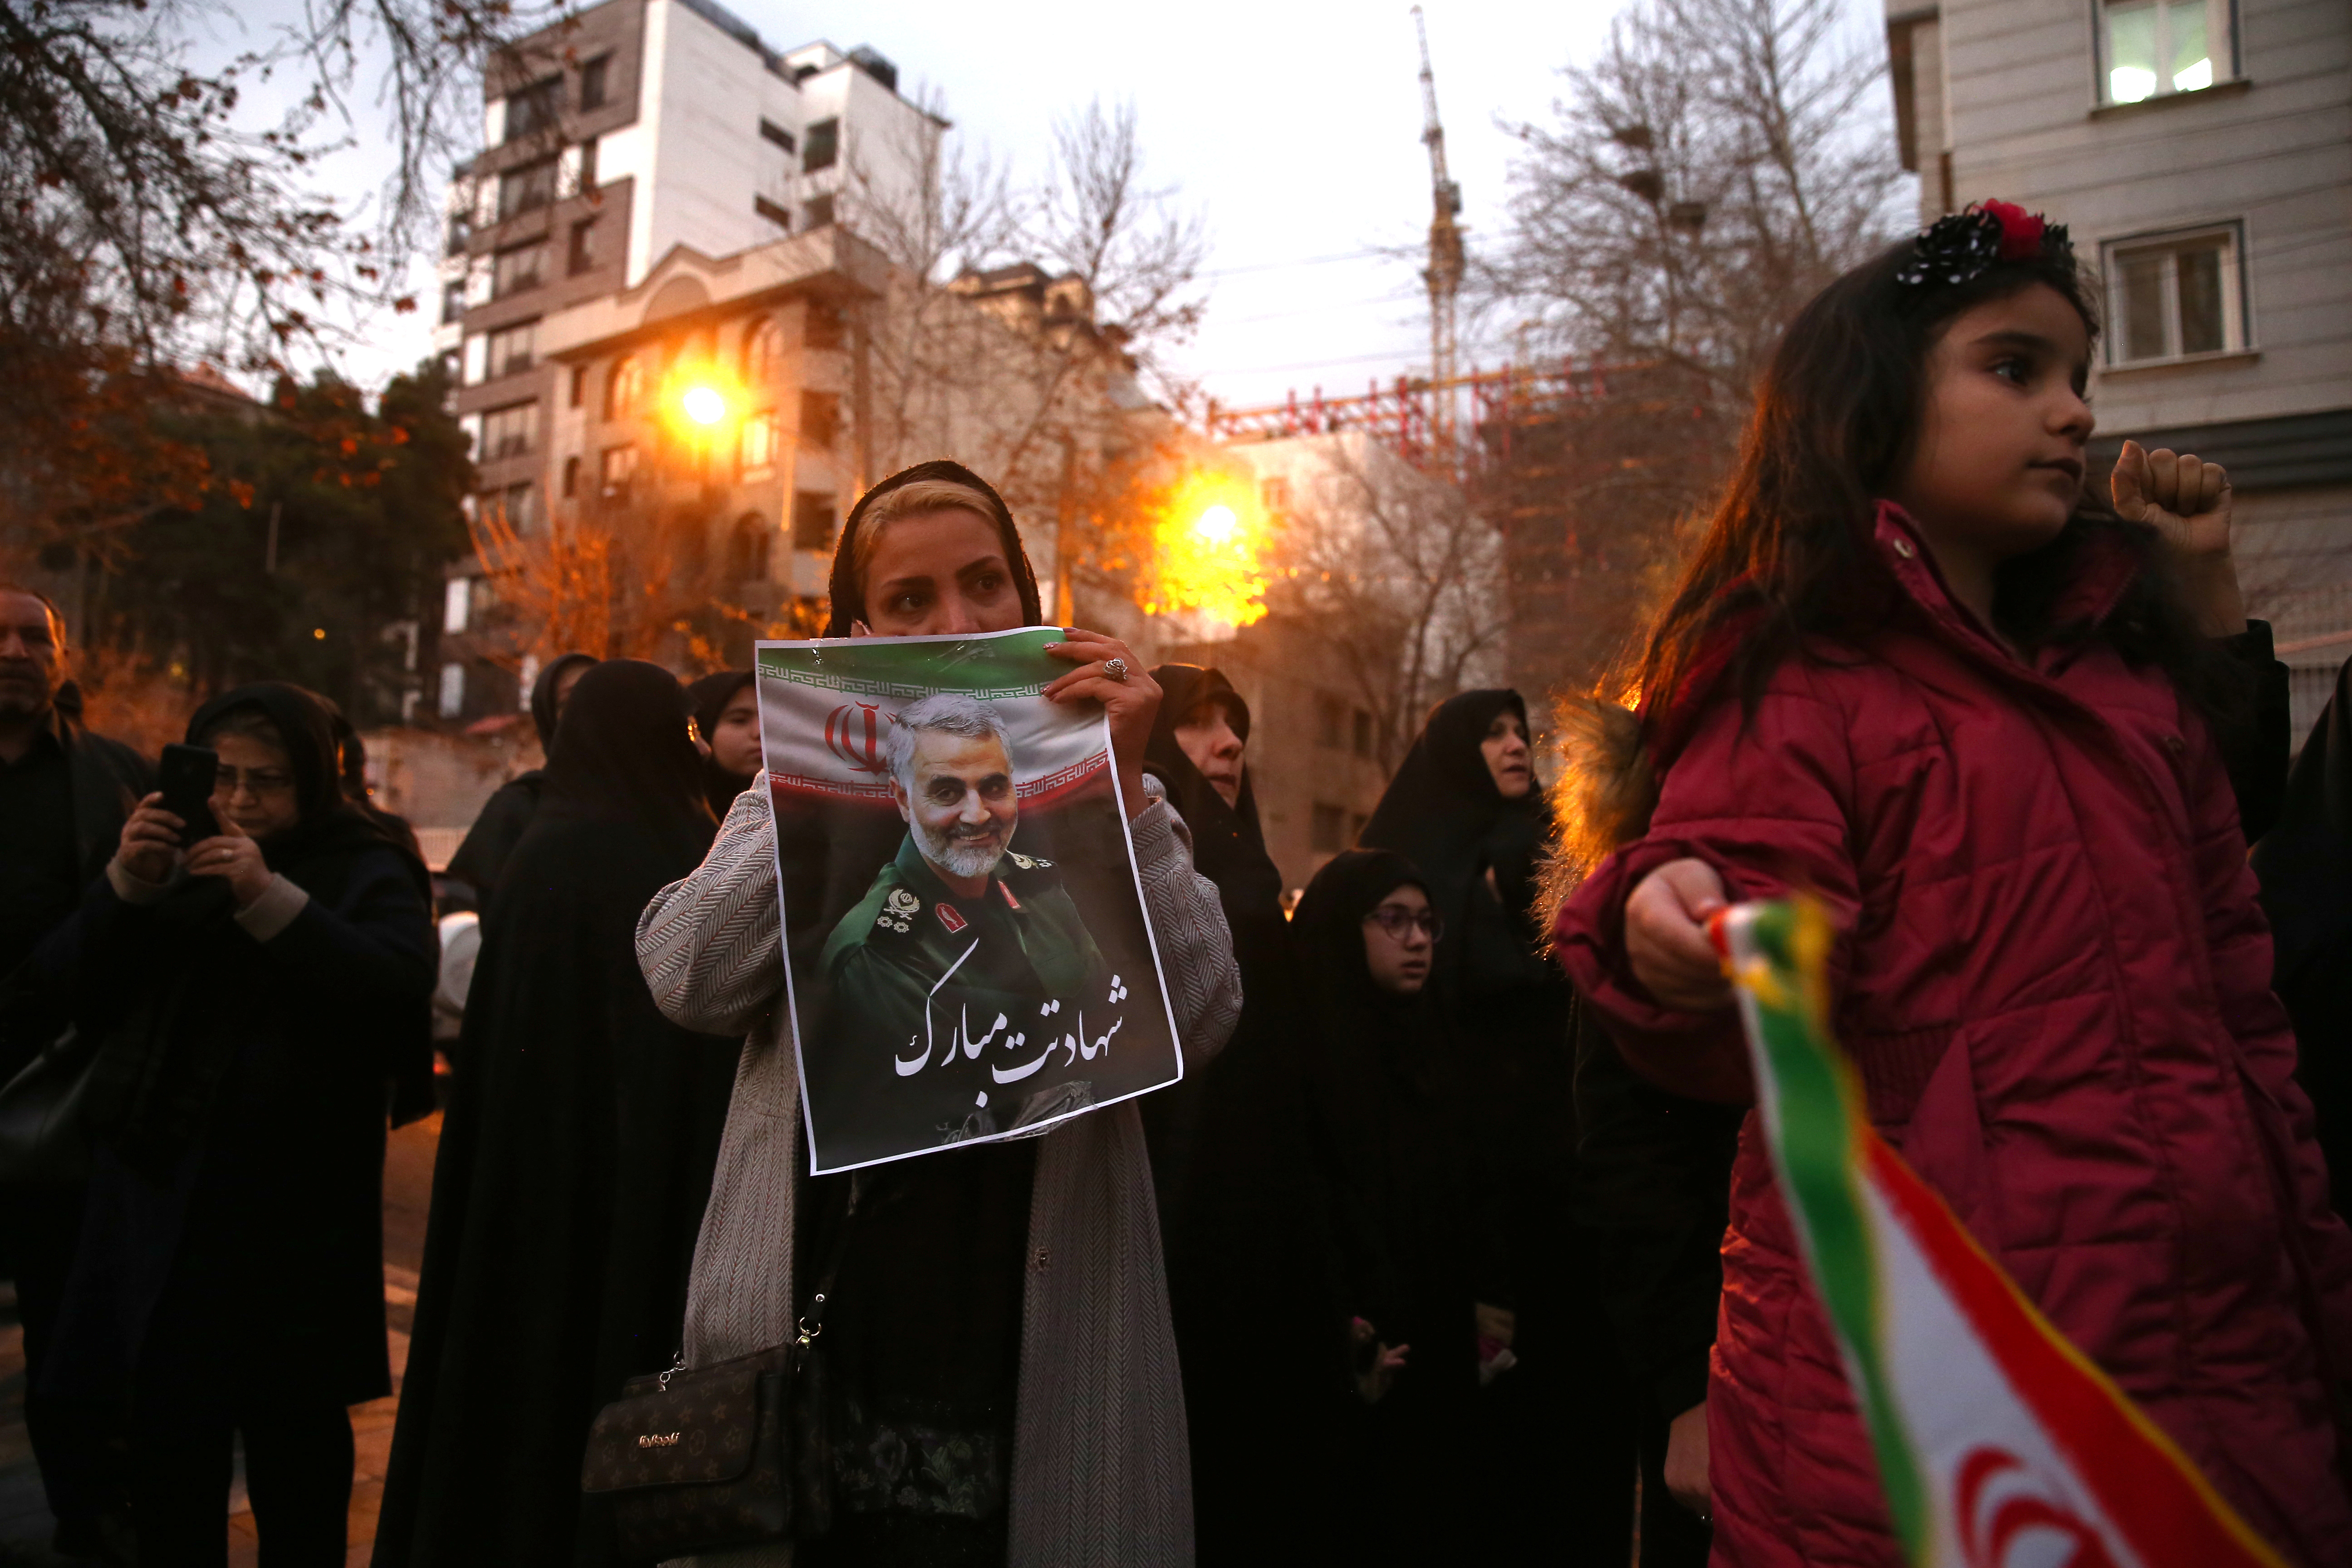 An Iranian demonstrator holds a picture of the late Iranian Major-General Qassem Soleimani, during a protest against the assassination of Soleimani, head of the elite Quds Force, and Iraqi militia commander Abu Mahdi al-Muhandis, who were killed in an air strike at Baghdad airport, in front of United Nation office in Tehran, Iran January 3, 2020. Nazanin Tabatabaee/WANA (West Asia News Agency) via REUTERS ATTENTION EDITORS - THIS IMAGE HAS BEEN SUPPLIED BY A THIRD PARTY.